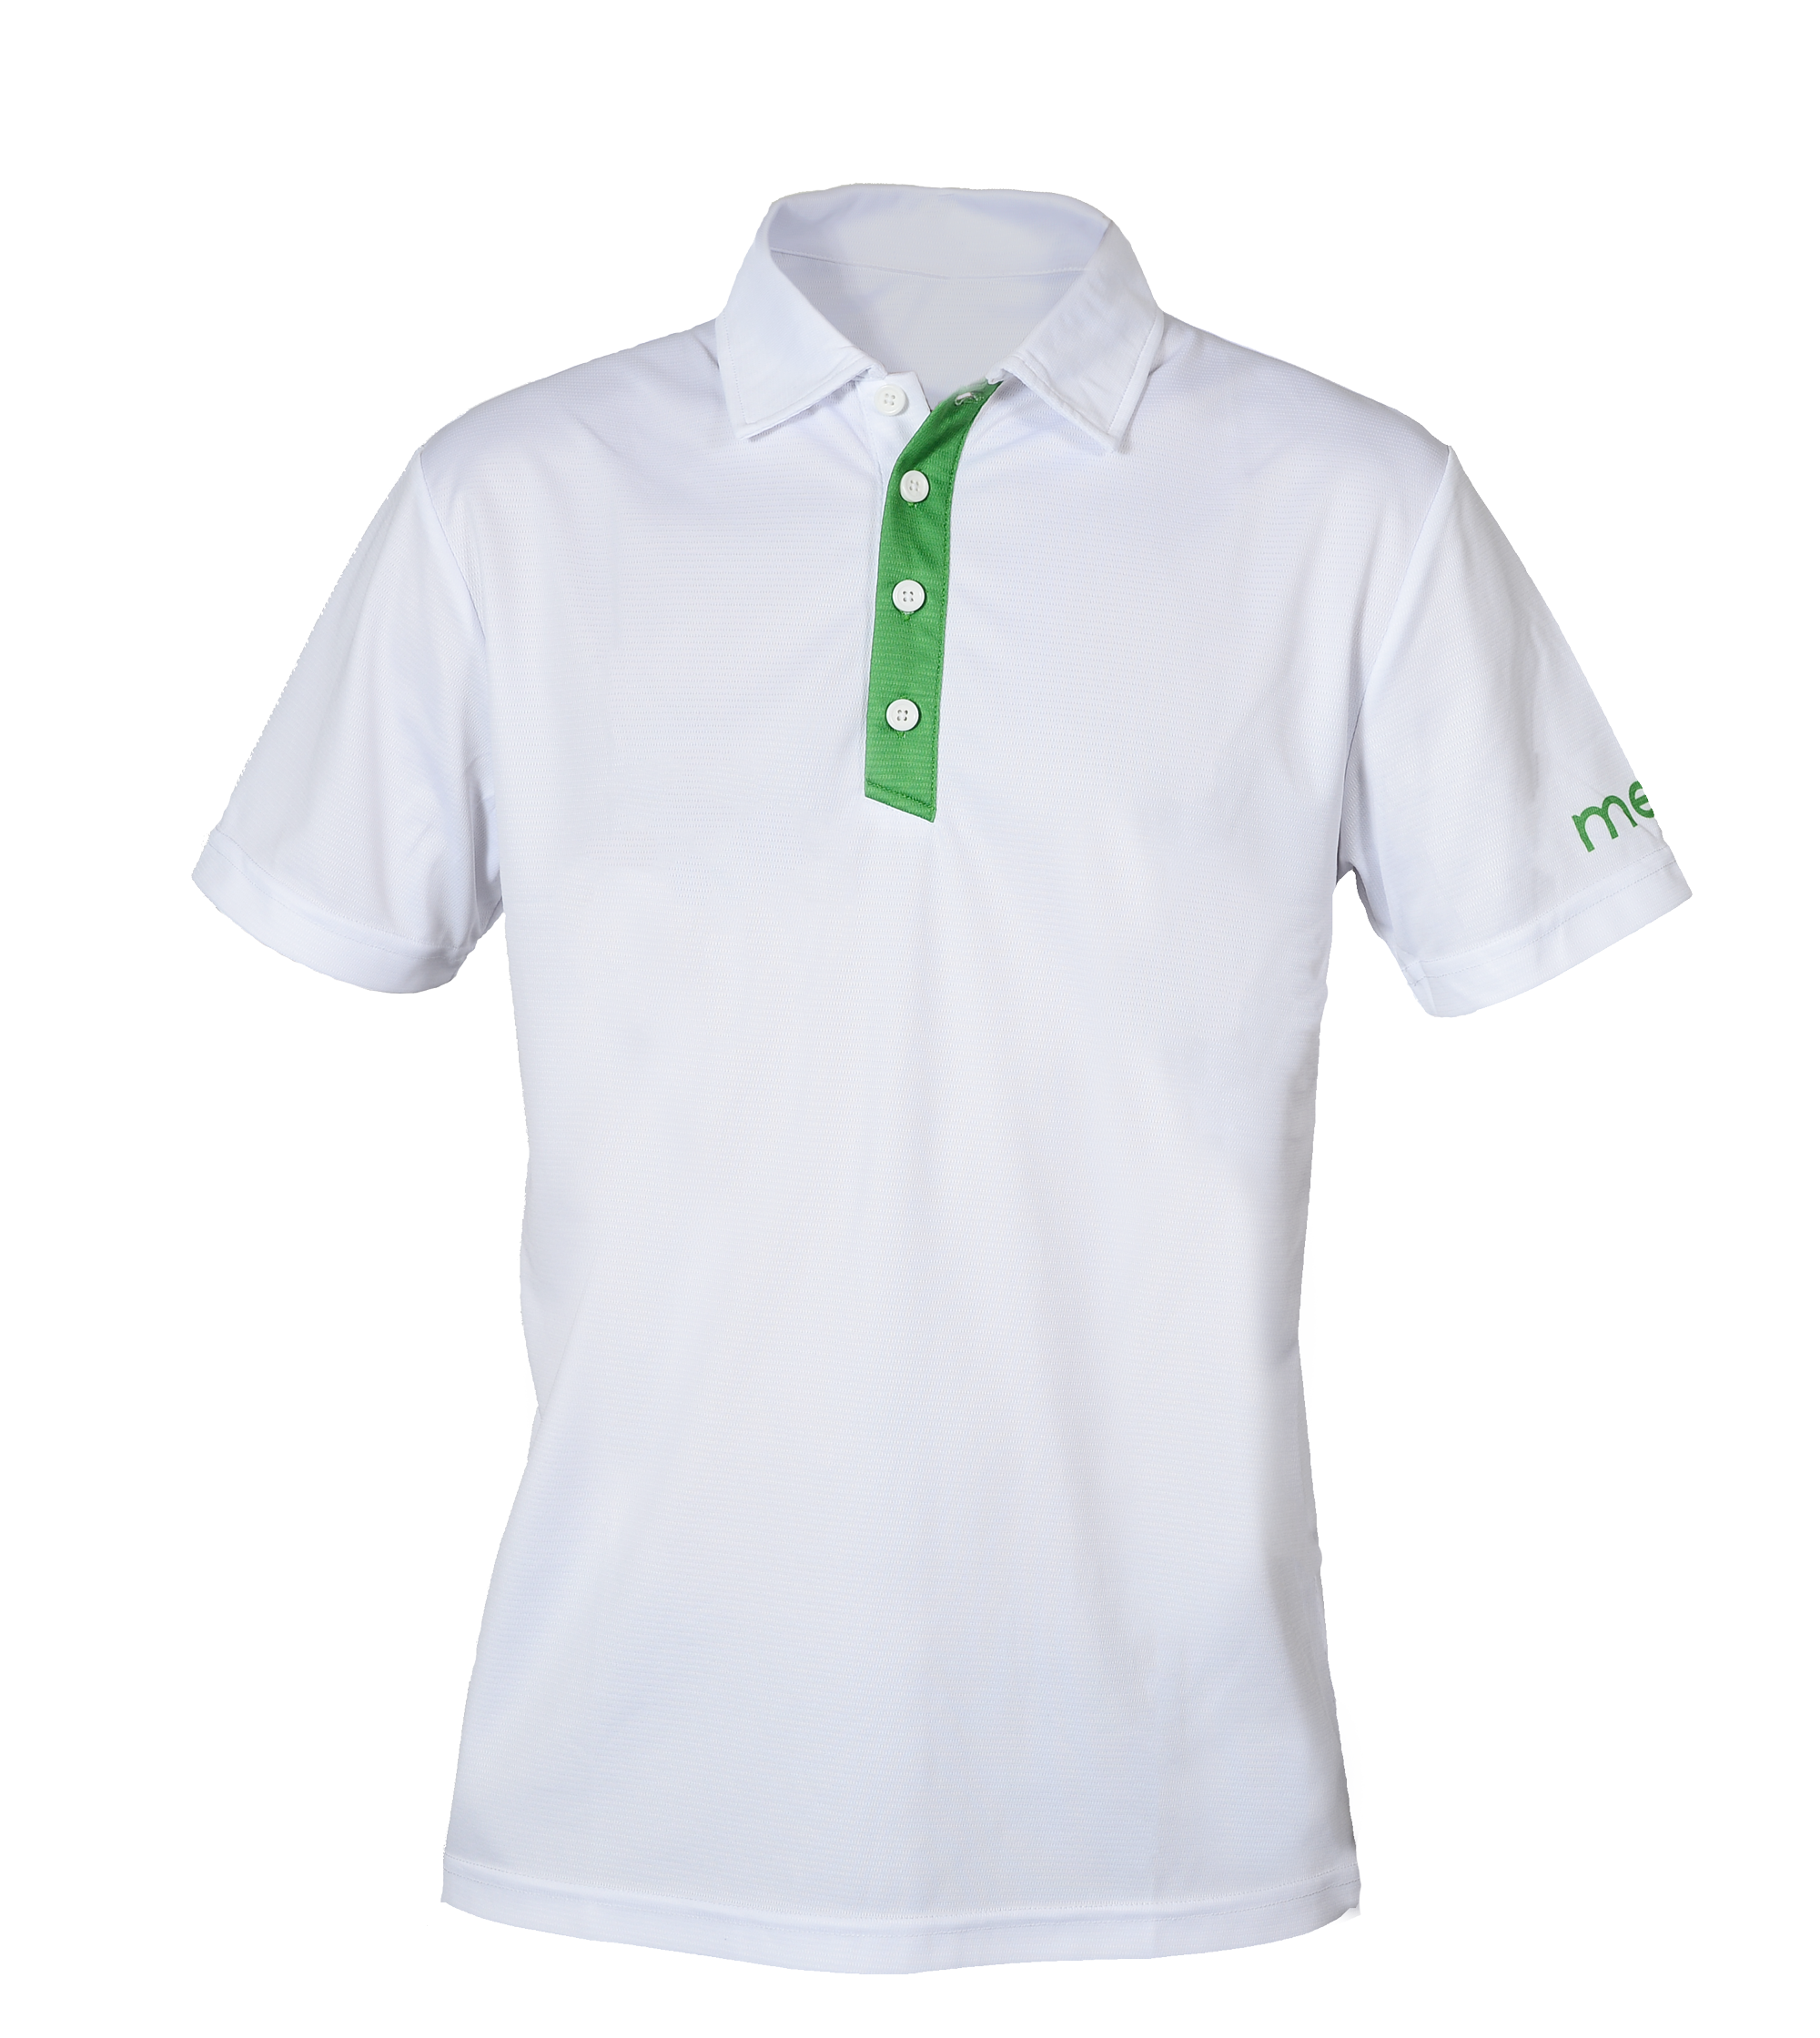 The Signautre Polo Whitegreen Mettle Golf Test Itmettle Golf